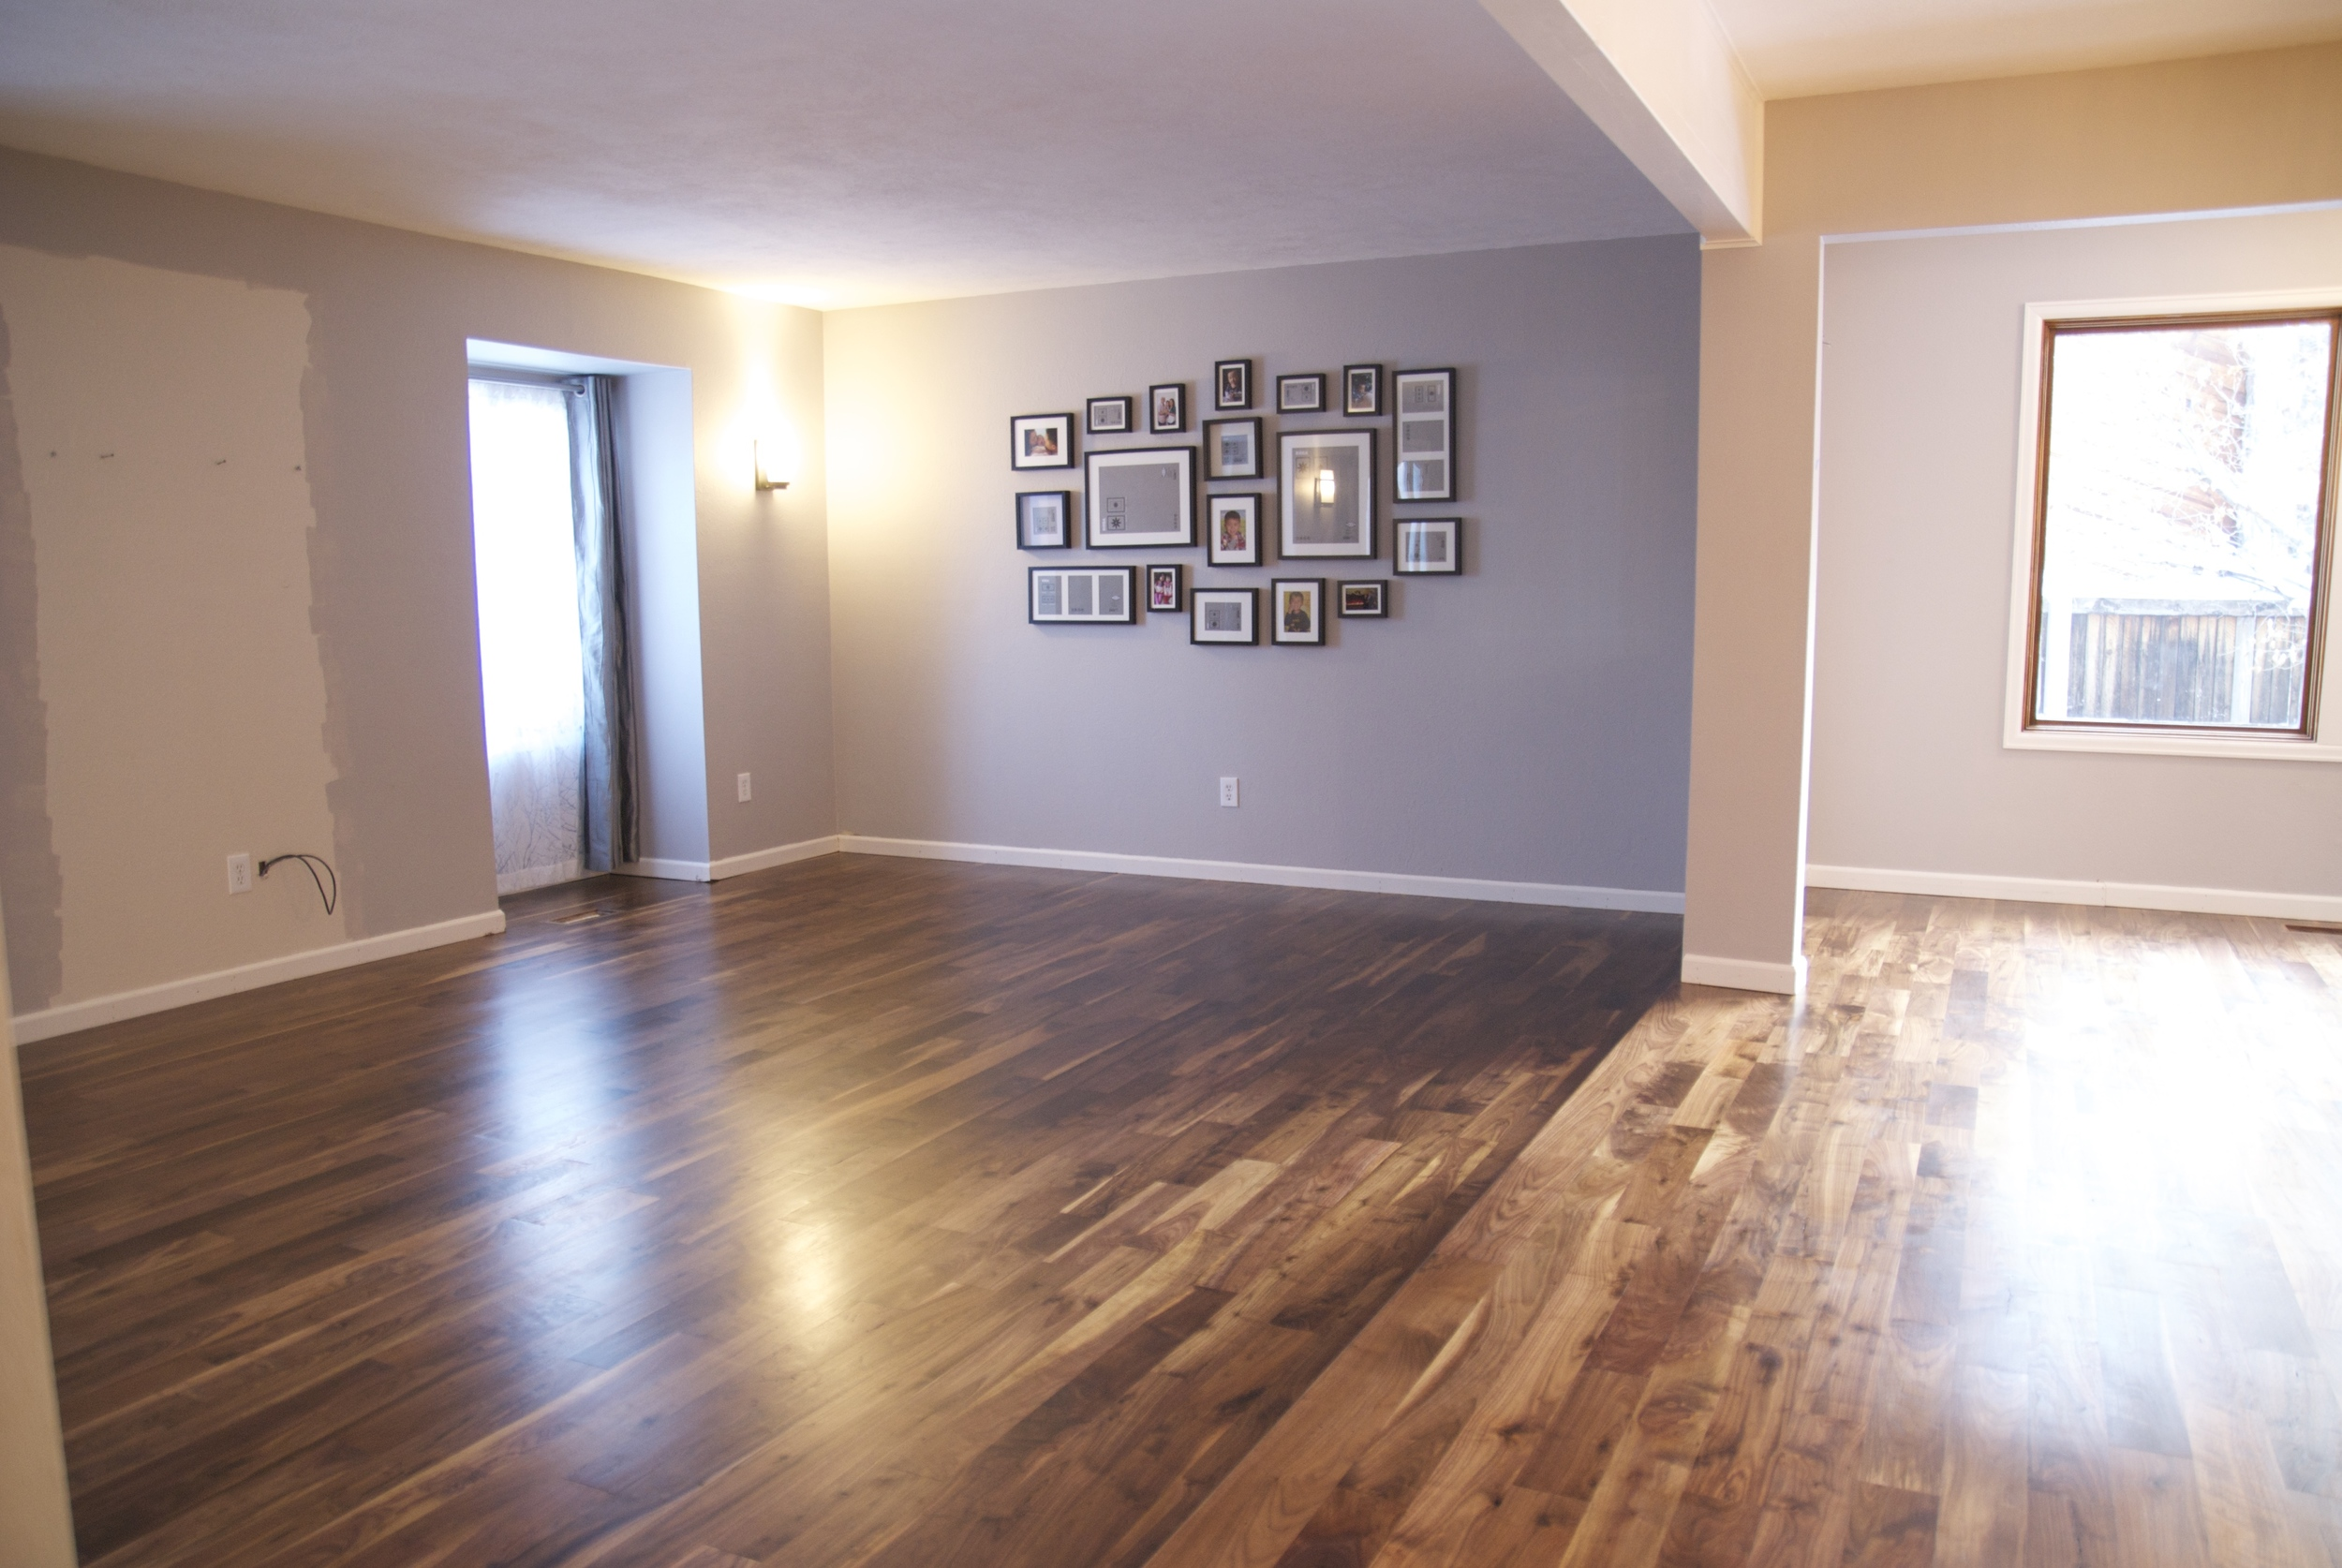 Fourth image of Residential Hardwood Flooring for The Ranch - Westminster by ASA Flooring